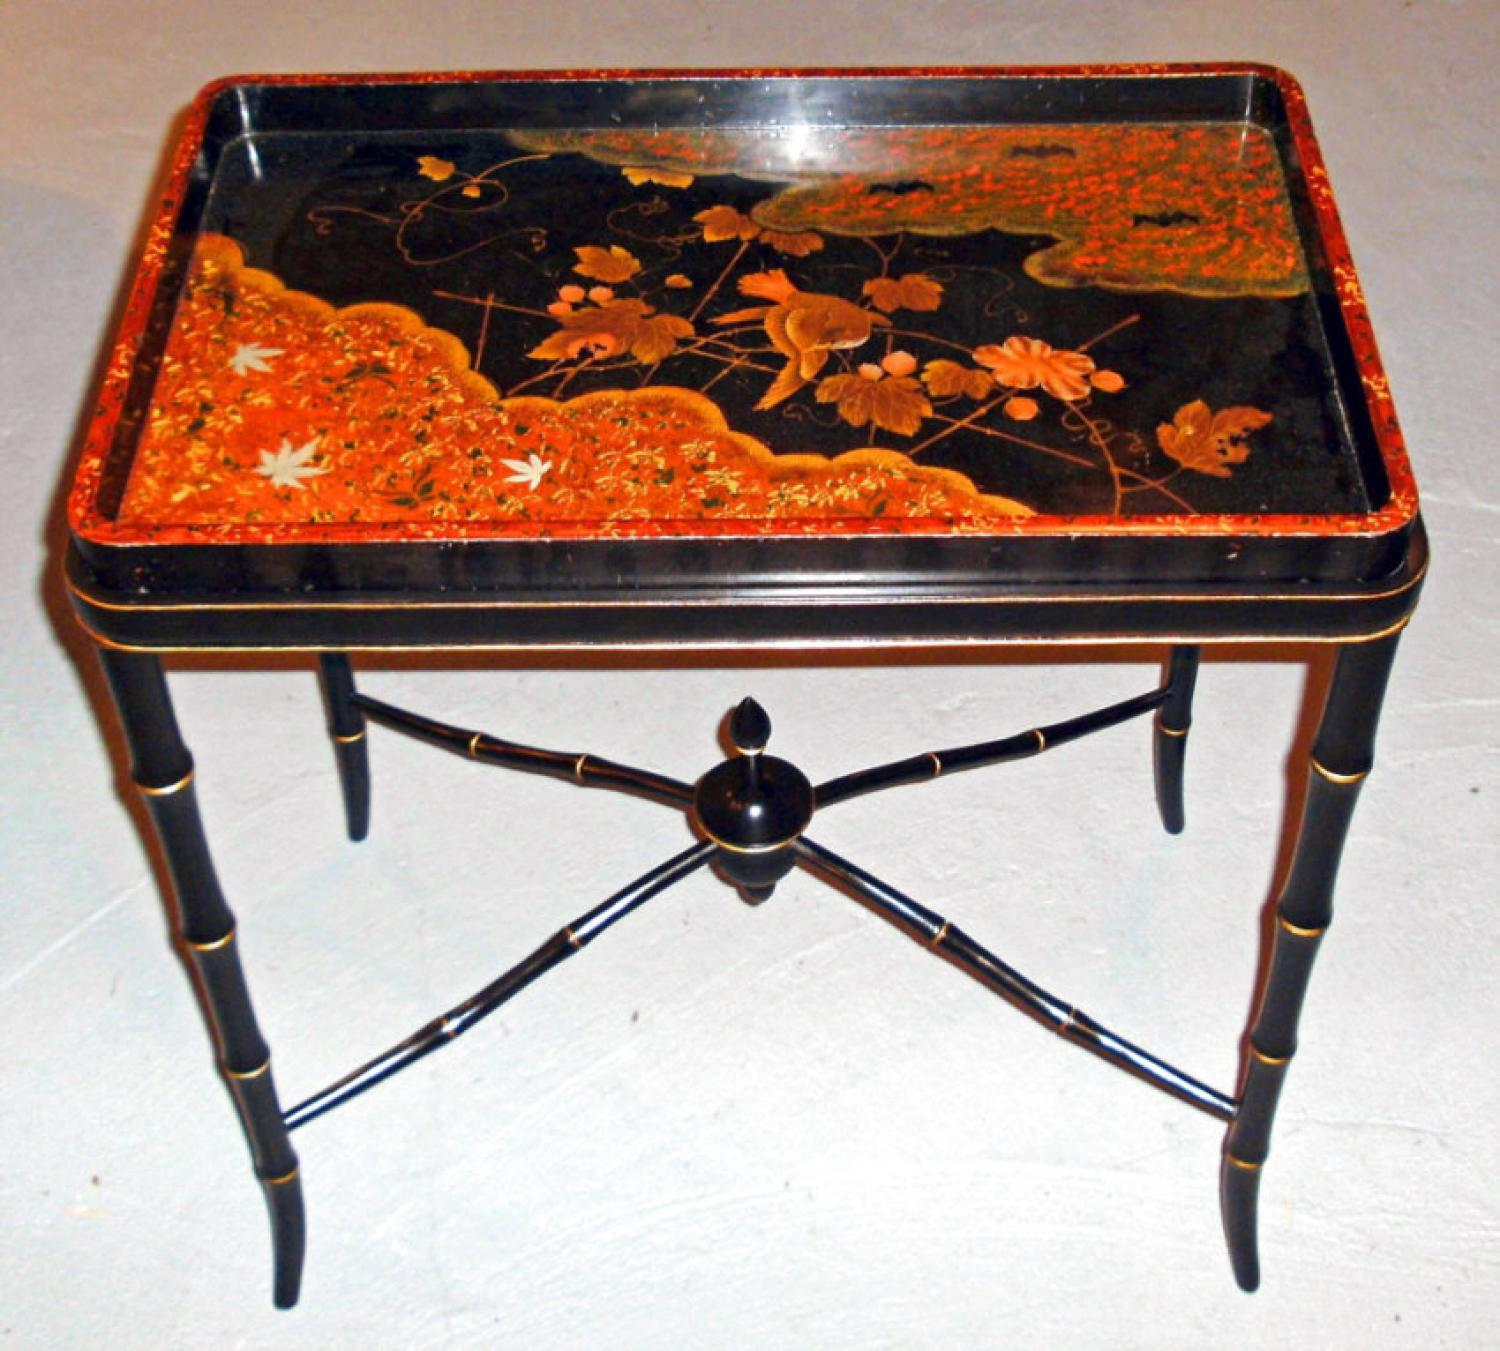 Meiji Period Japanese oblong shape black lacquer tray table